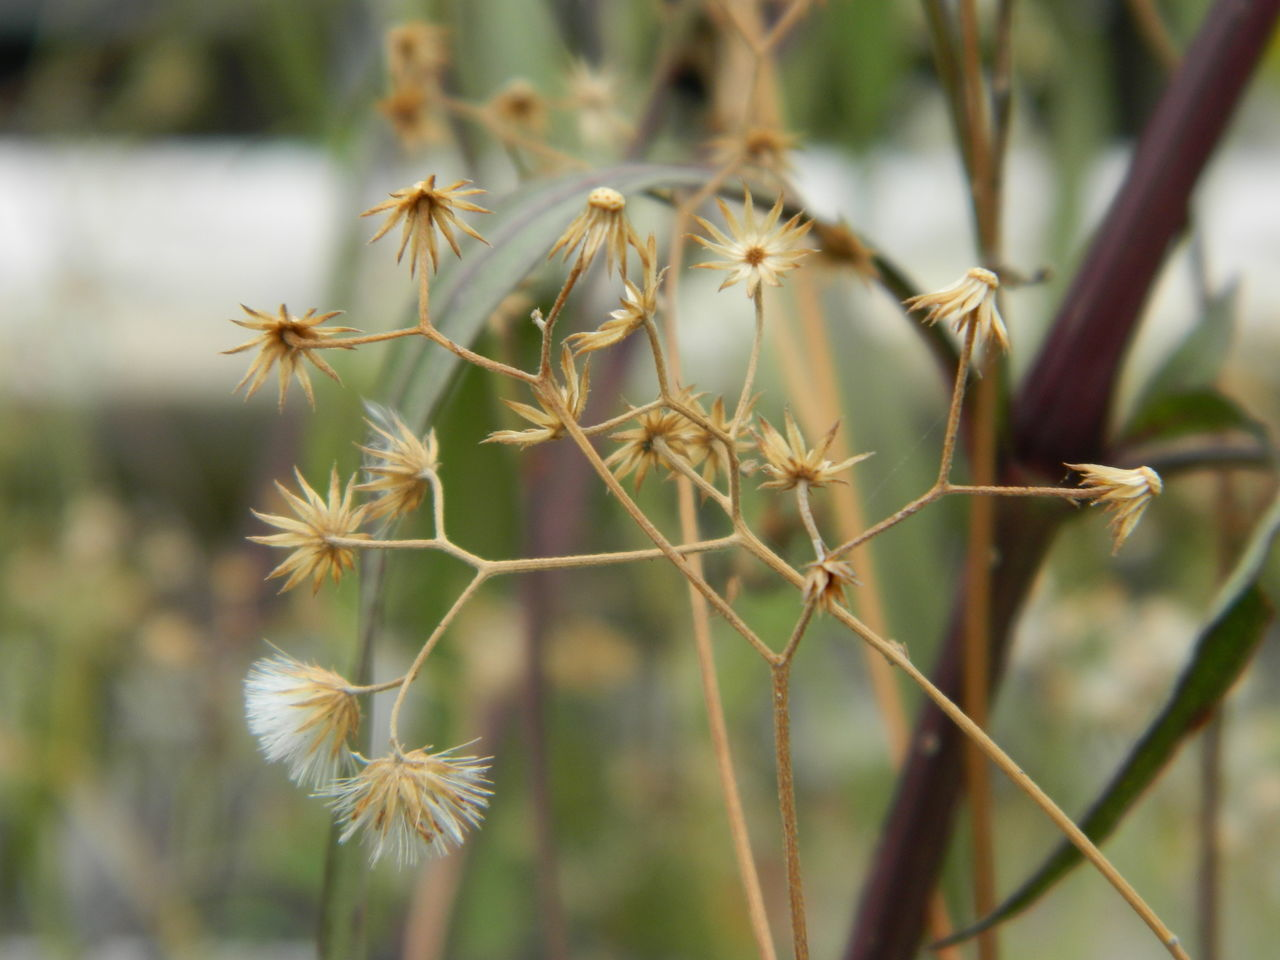 Beauty In Nature Close-up Day Focus On Foreground Fragility Growth Nature No People Outdoors Plant Spiky Wilted Plant